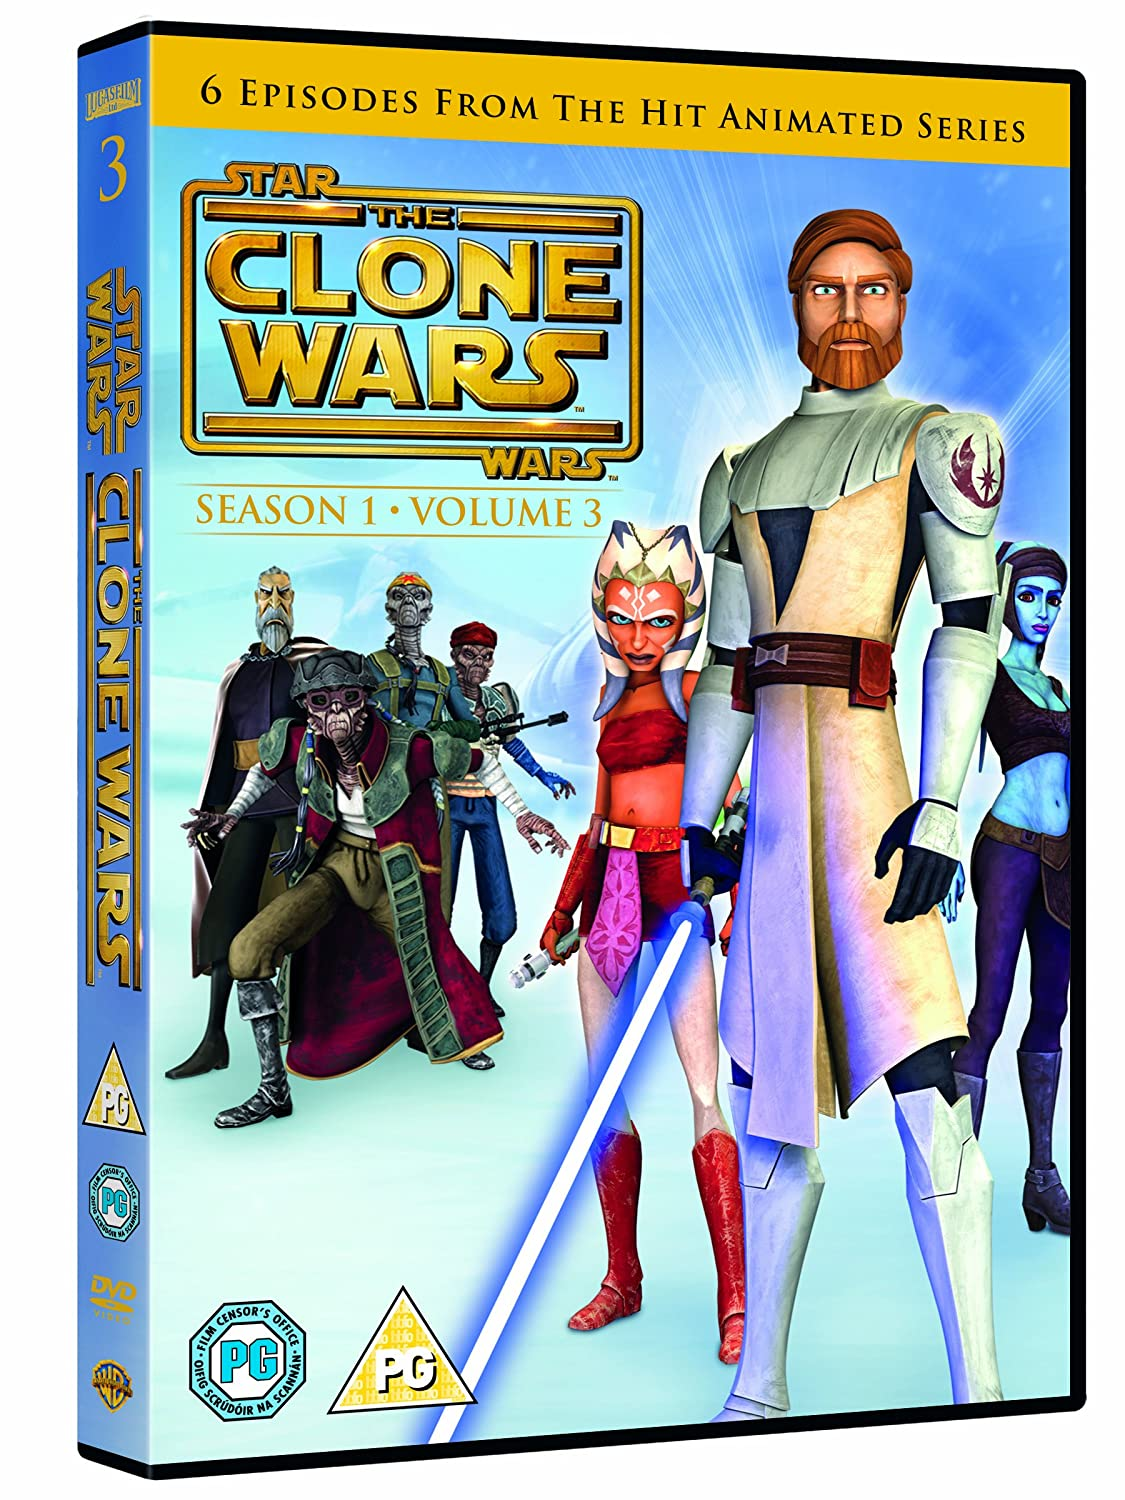 Star Wars: The Clone Wars Season 1 Volume 3